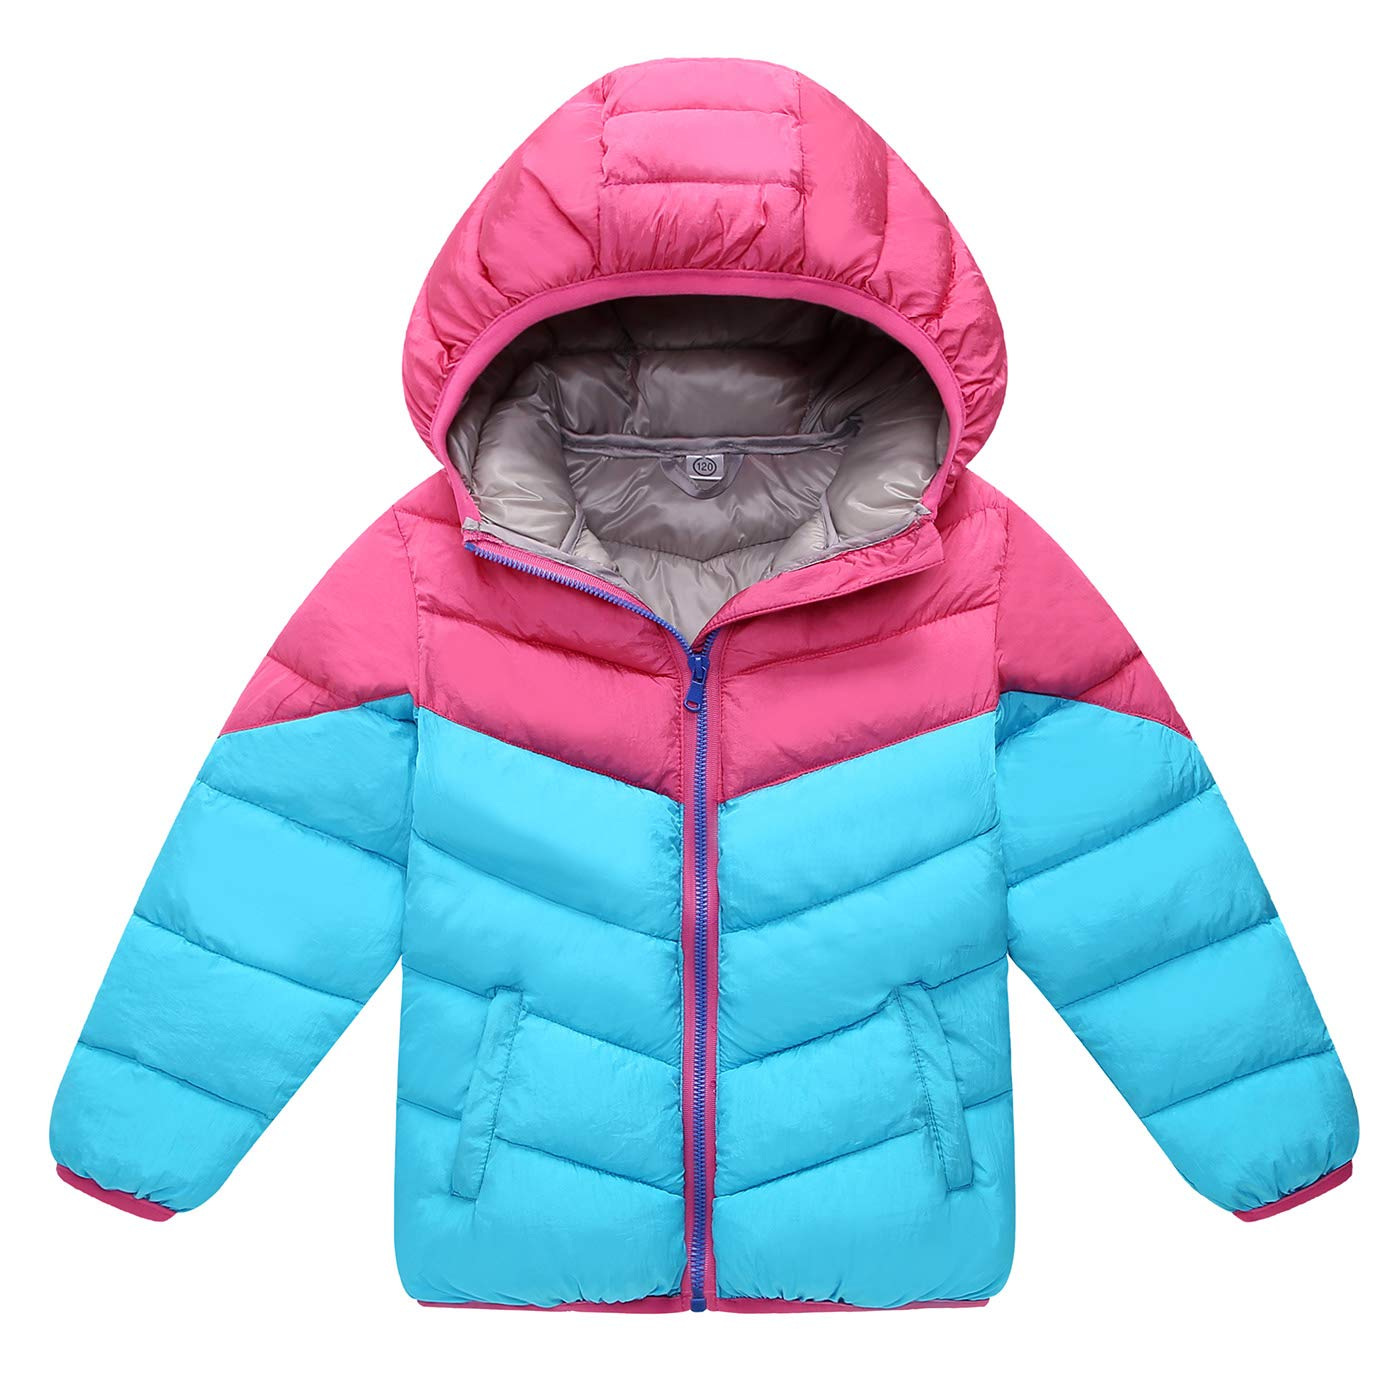 Aivtalk Boys Girls Winter Down Jacket Hooded Puffer Lightweight Coat Outerwear